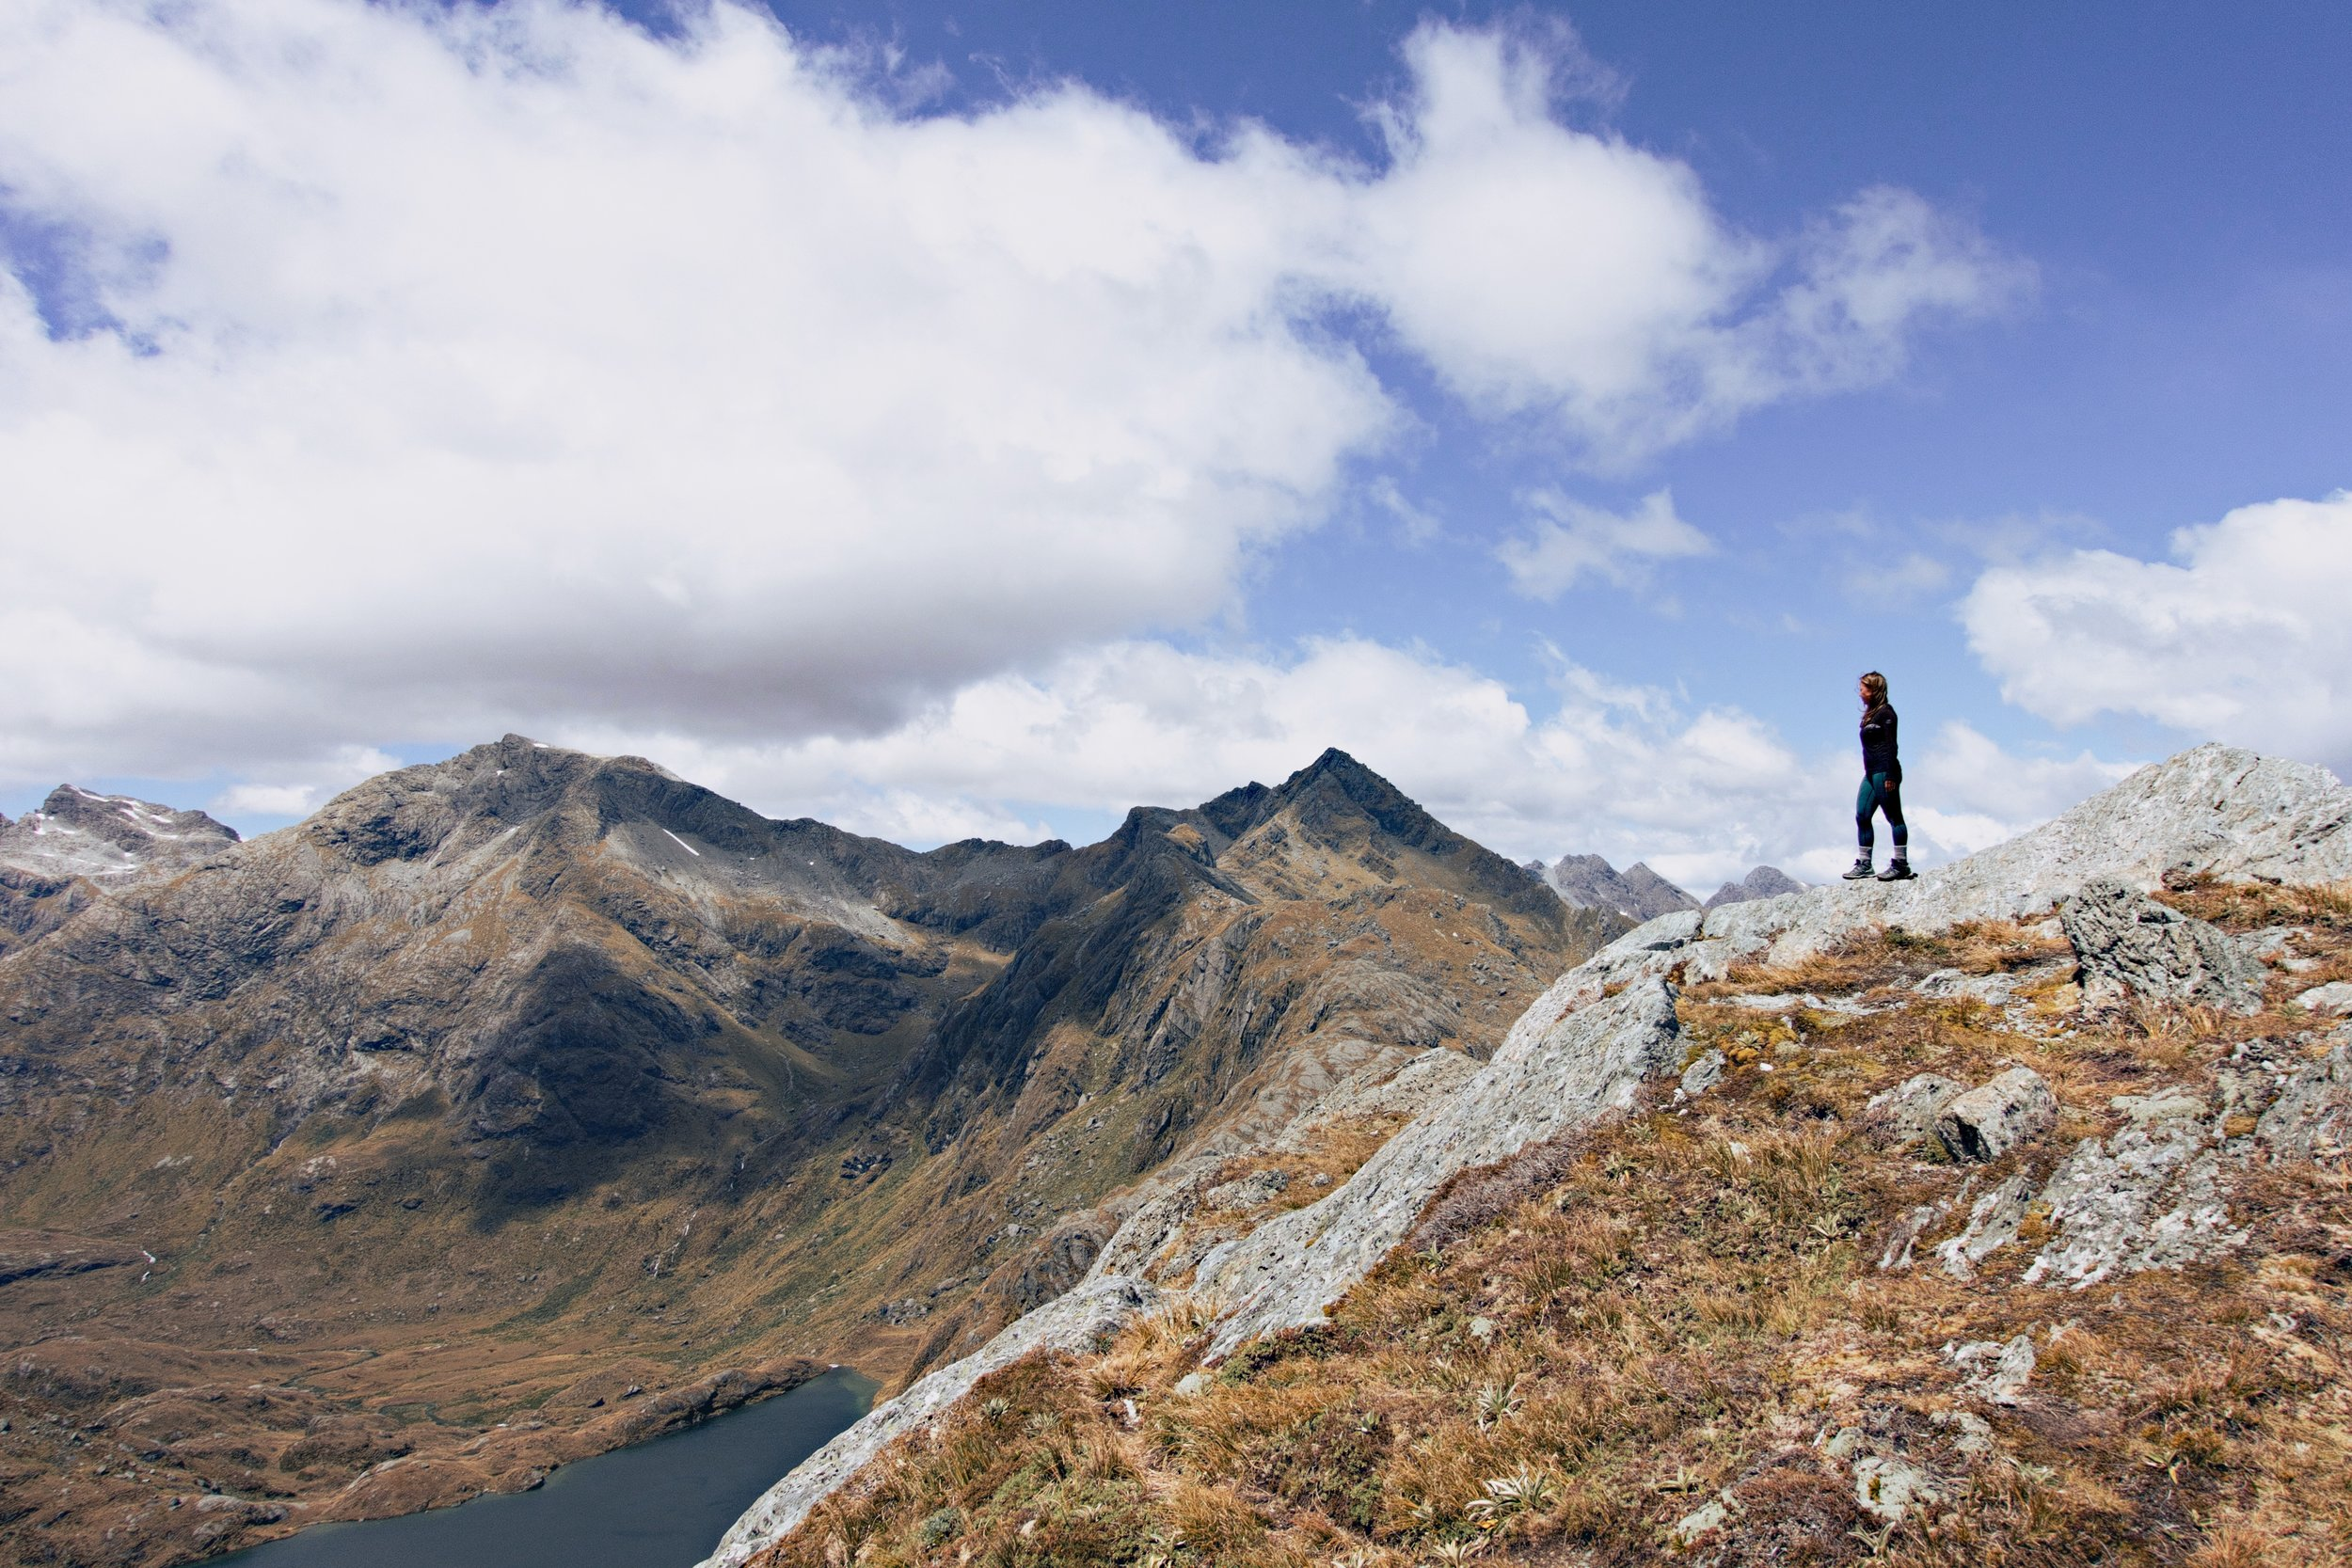 Routeburn Track, one of the Great Walks